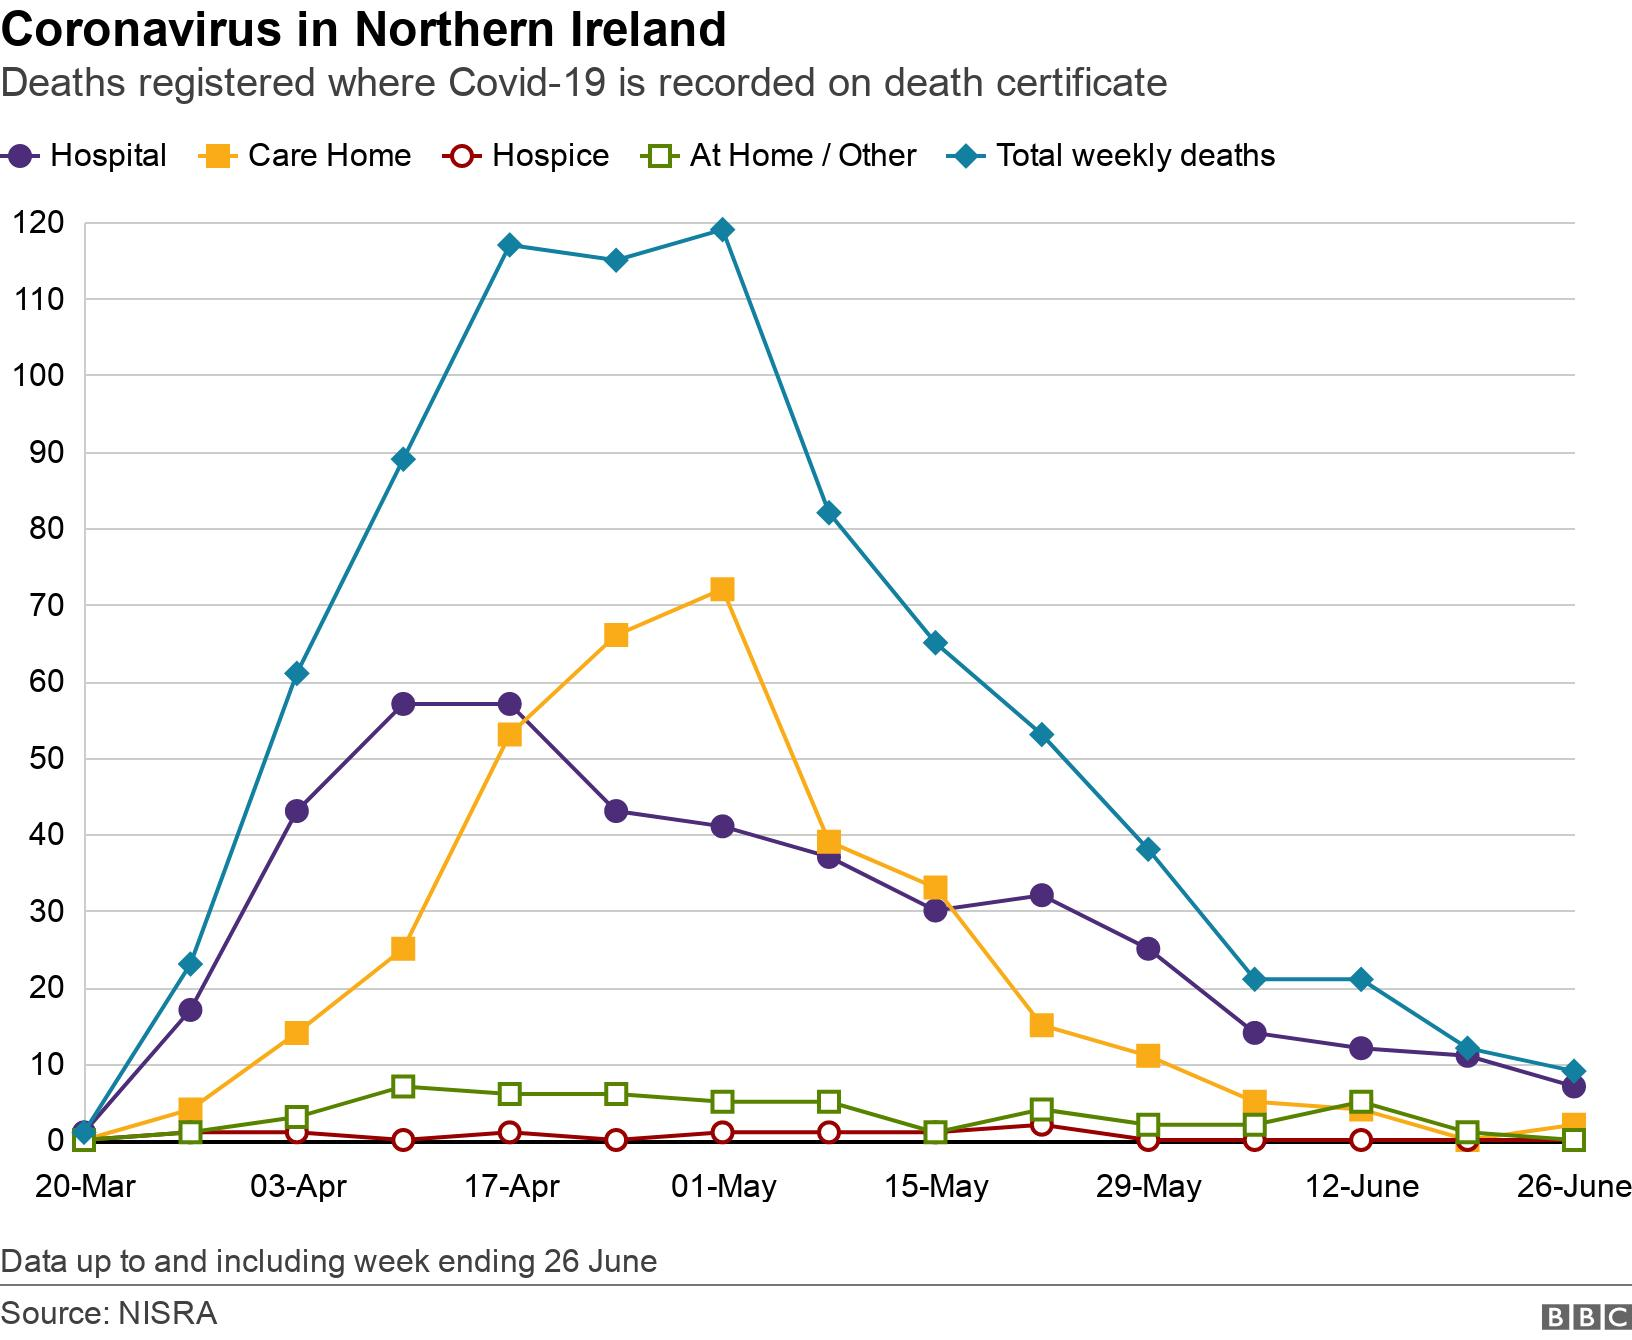 Coronavirus in Northern Ireland. Deaths registered where Covid-19 is recorded on death certificate. Graph showing place of death over time Data up to and including week ending 26 June.